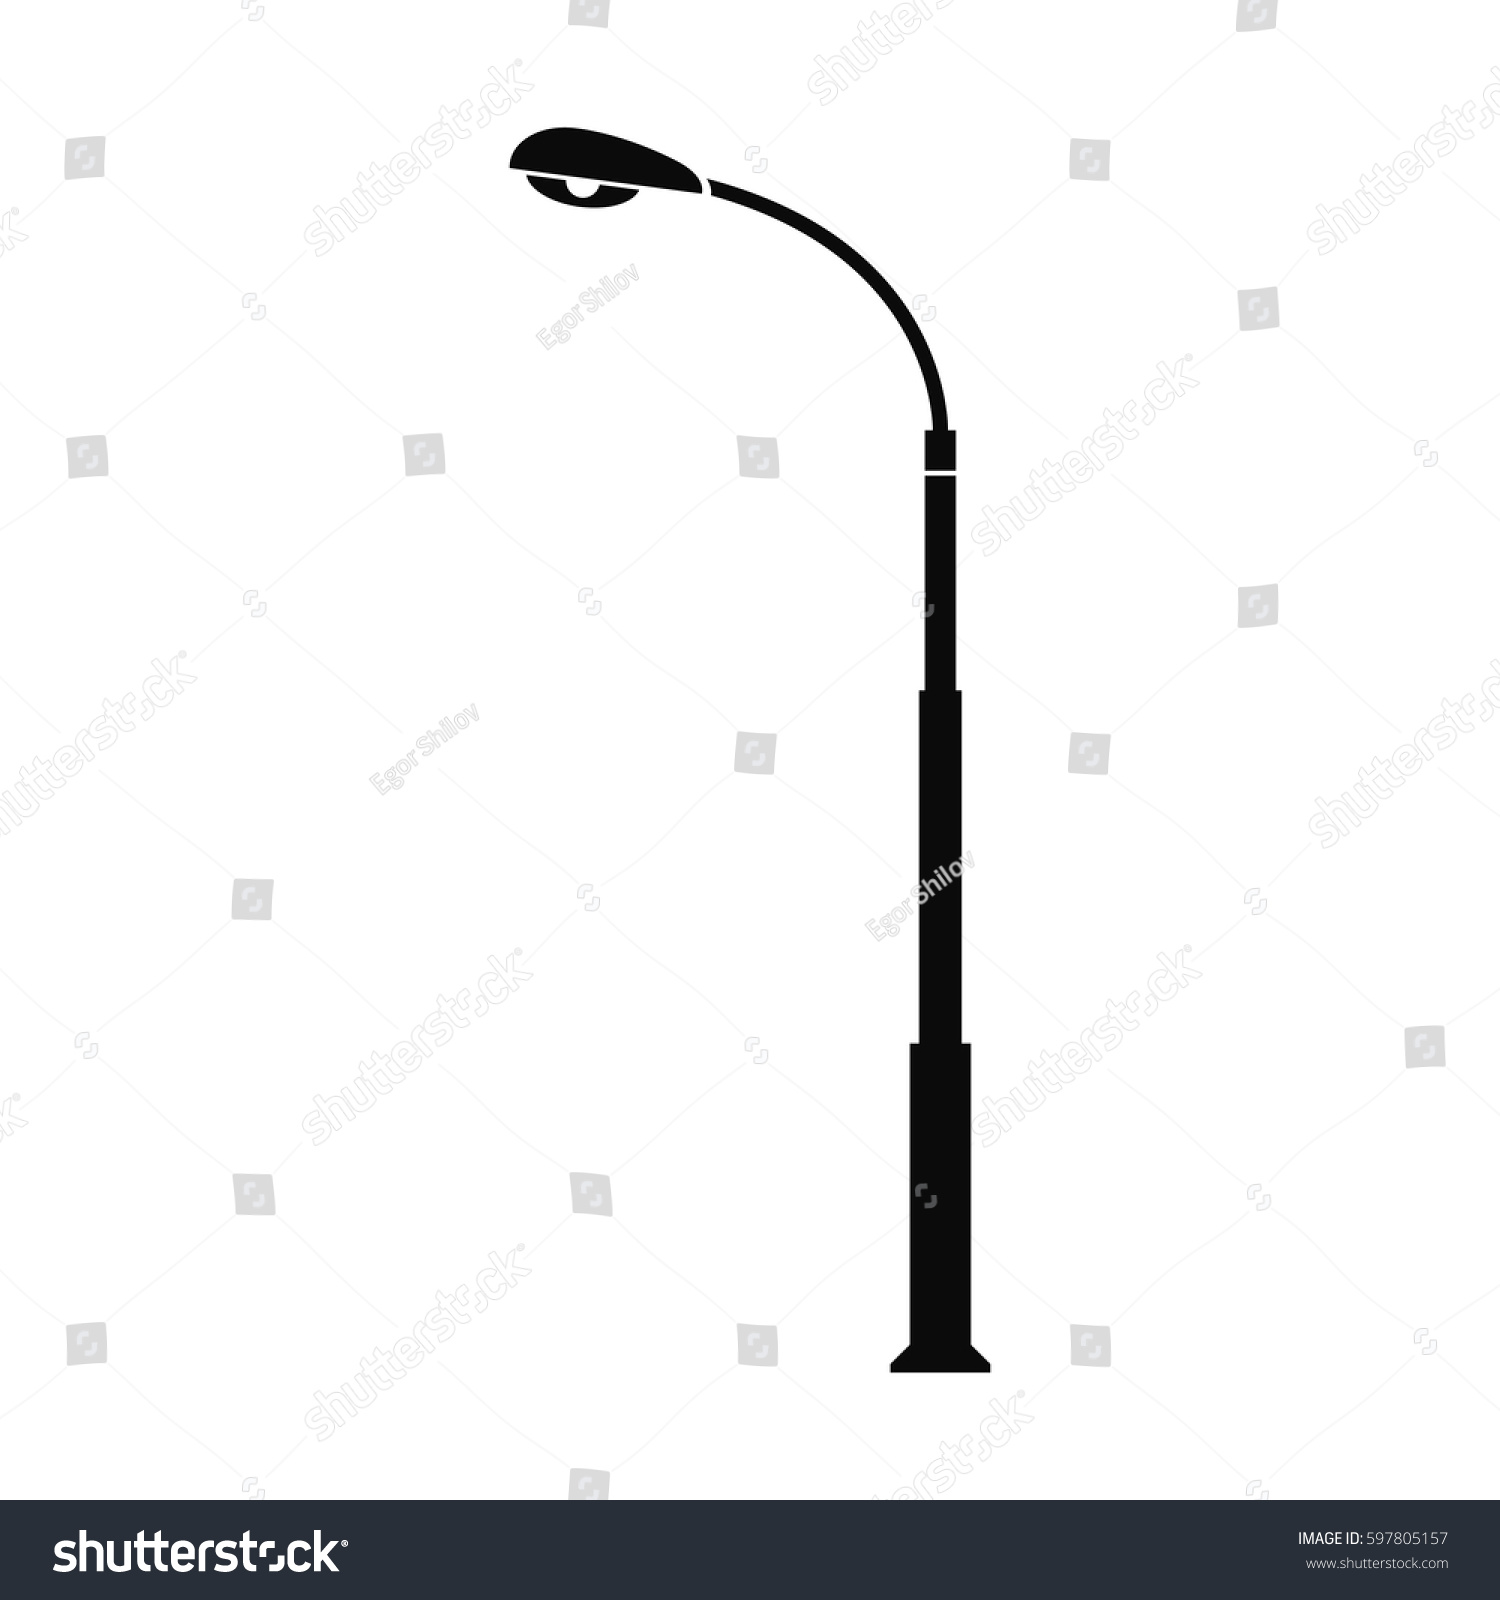 Street Lamppost Vector Illustration Stock Vector 597805157 ... for Street Lamp Post Vector  156eri